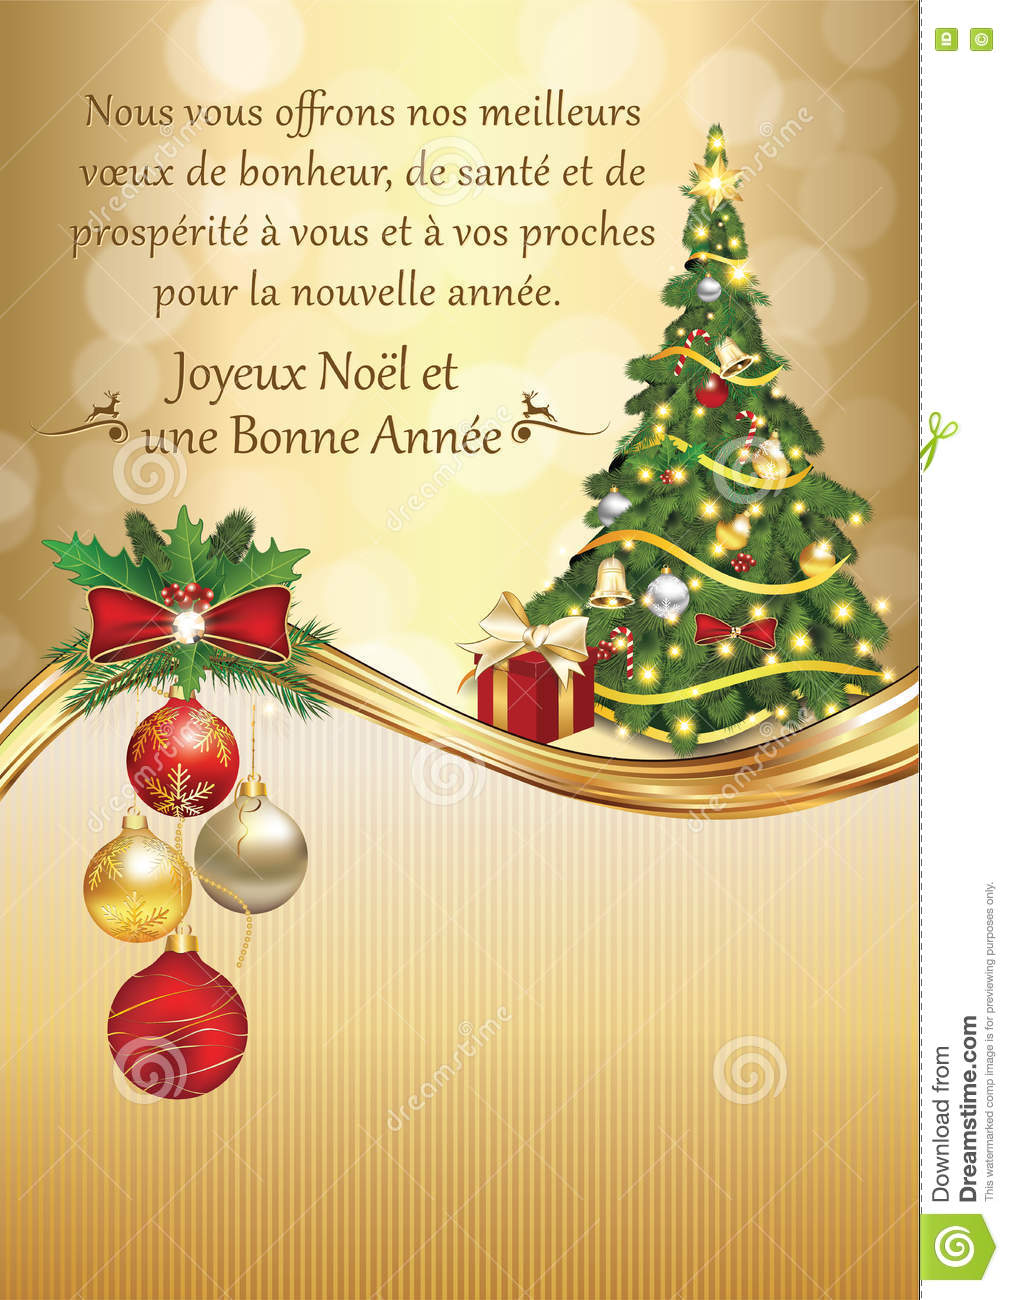 French seasons greetings for new year stock illustration french seasons greetings for new year kristyandbryce Choice Image